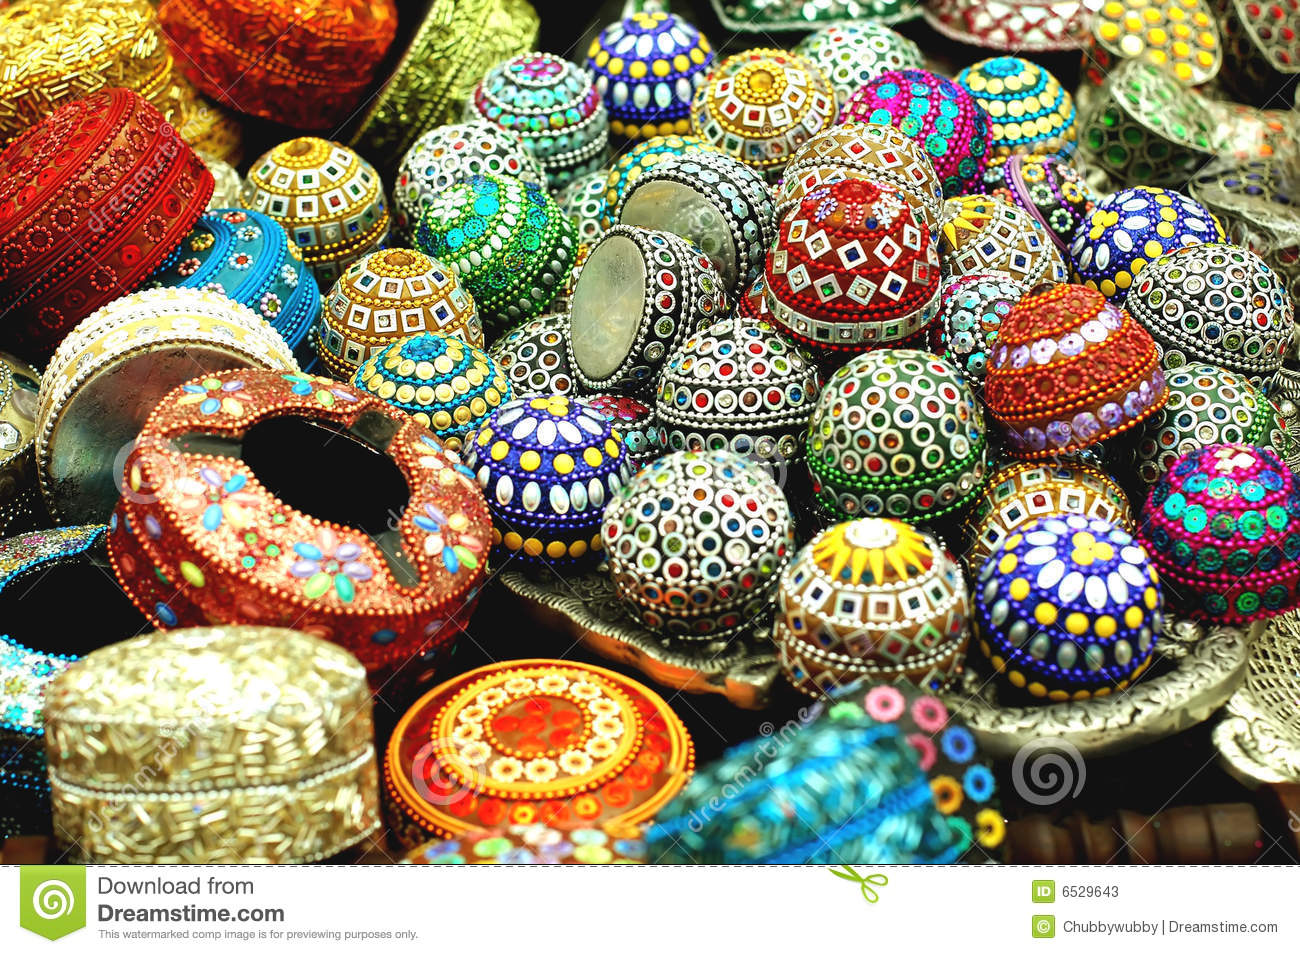 Handicraft Stock Photos - Image: 6529643